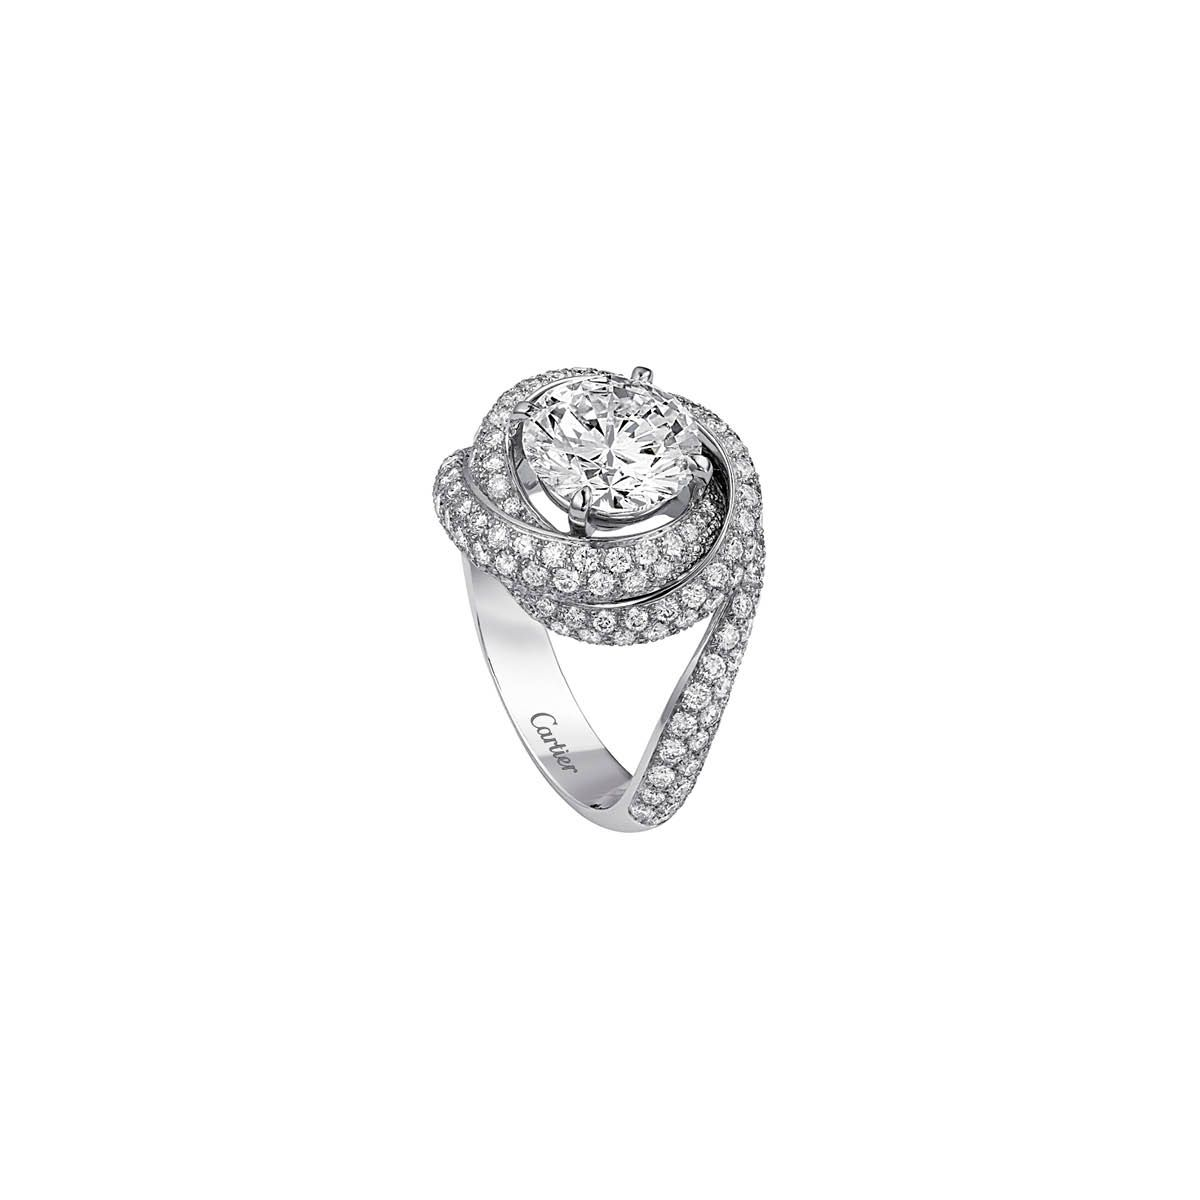 068a76bd80be1 Cartier Trinity Ruban solitaire ring, price upon requestFor ...